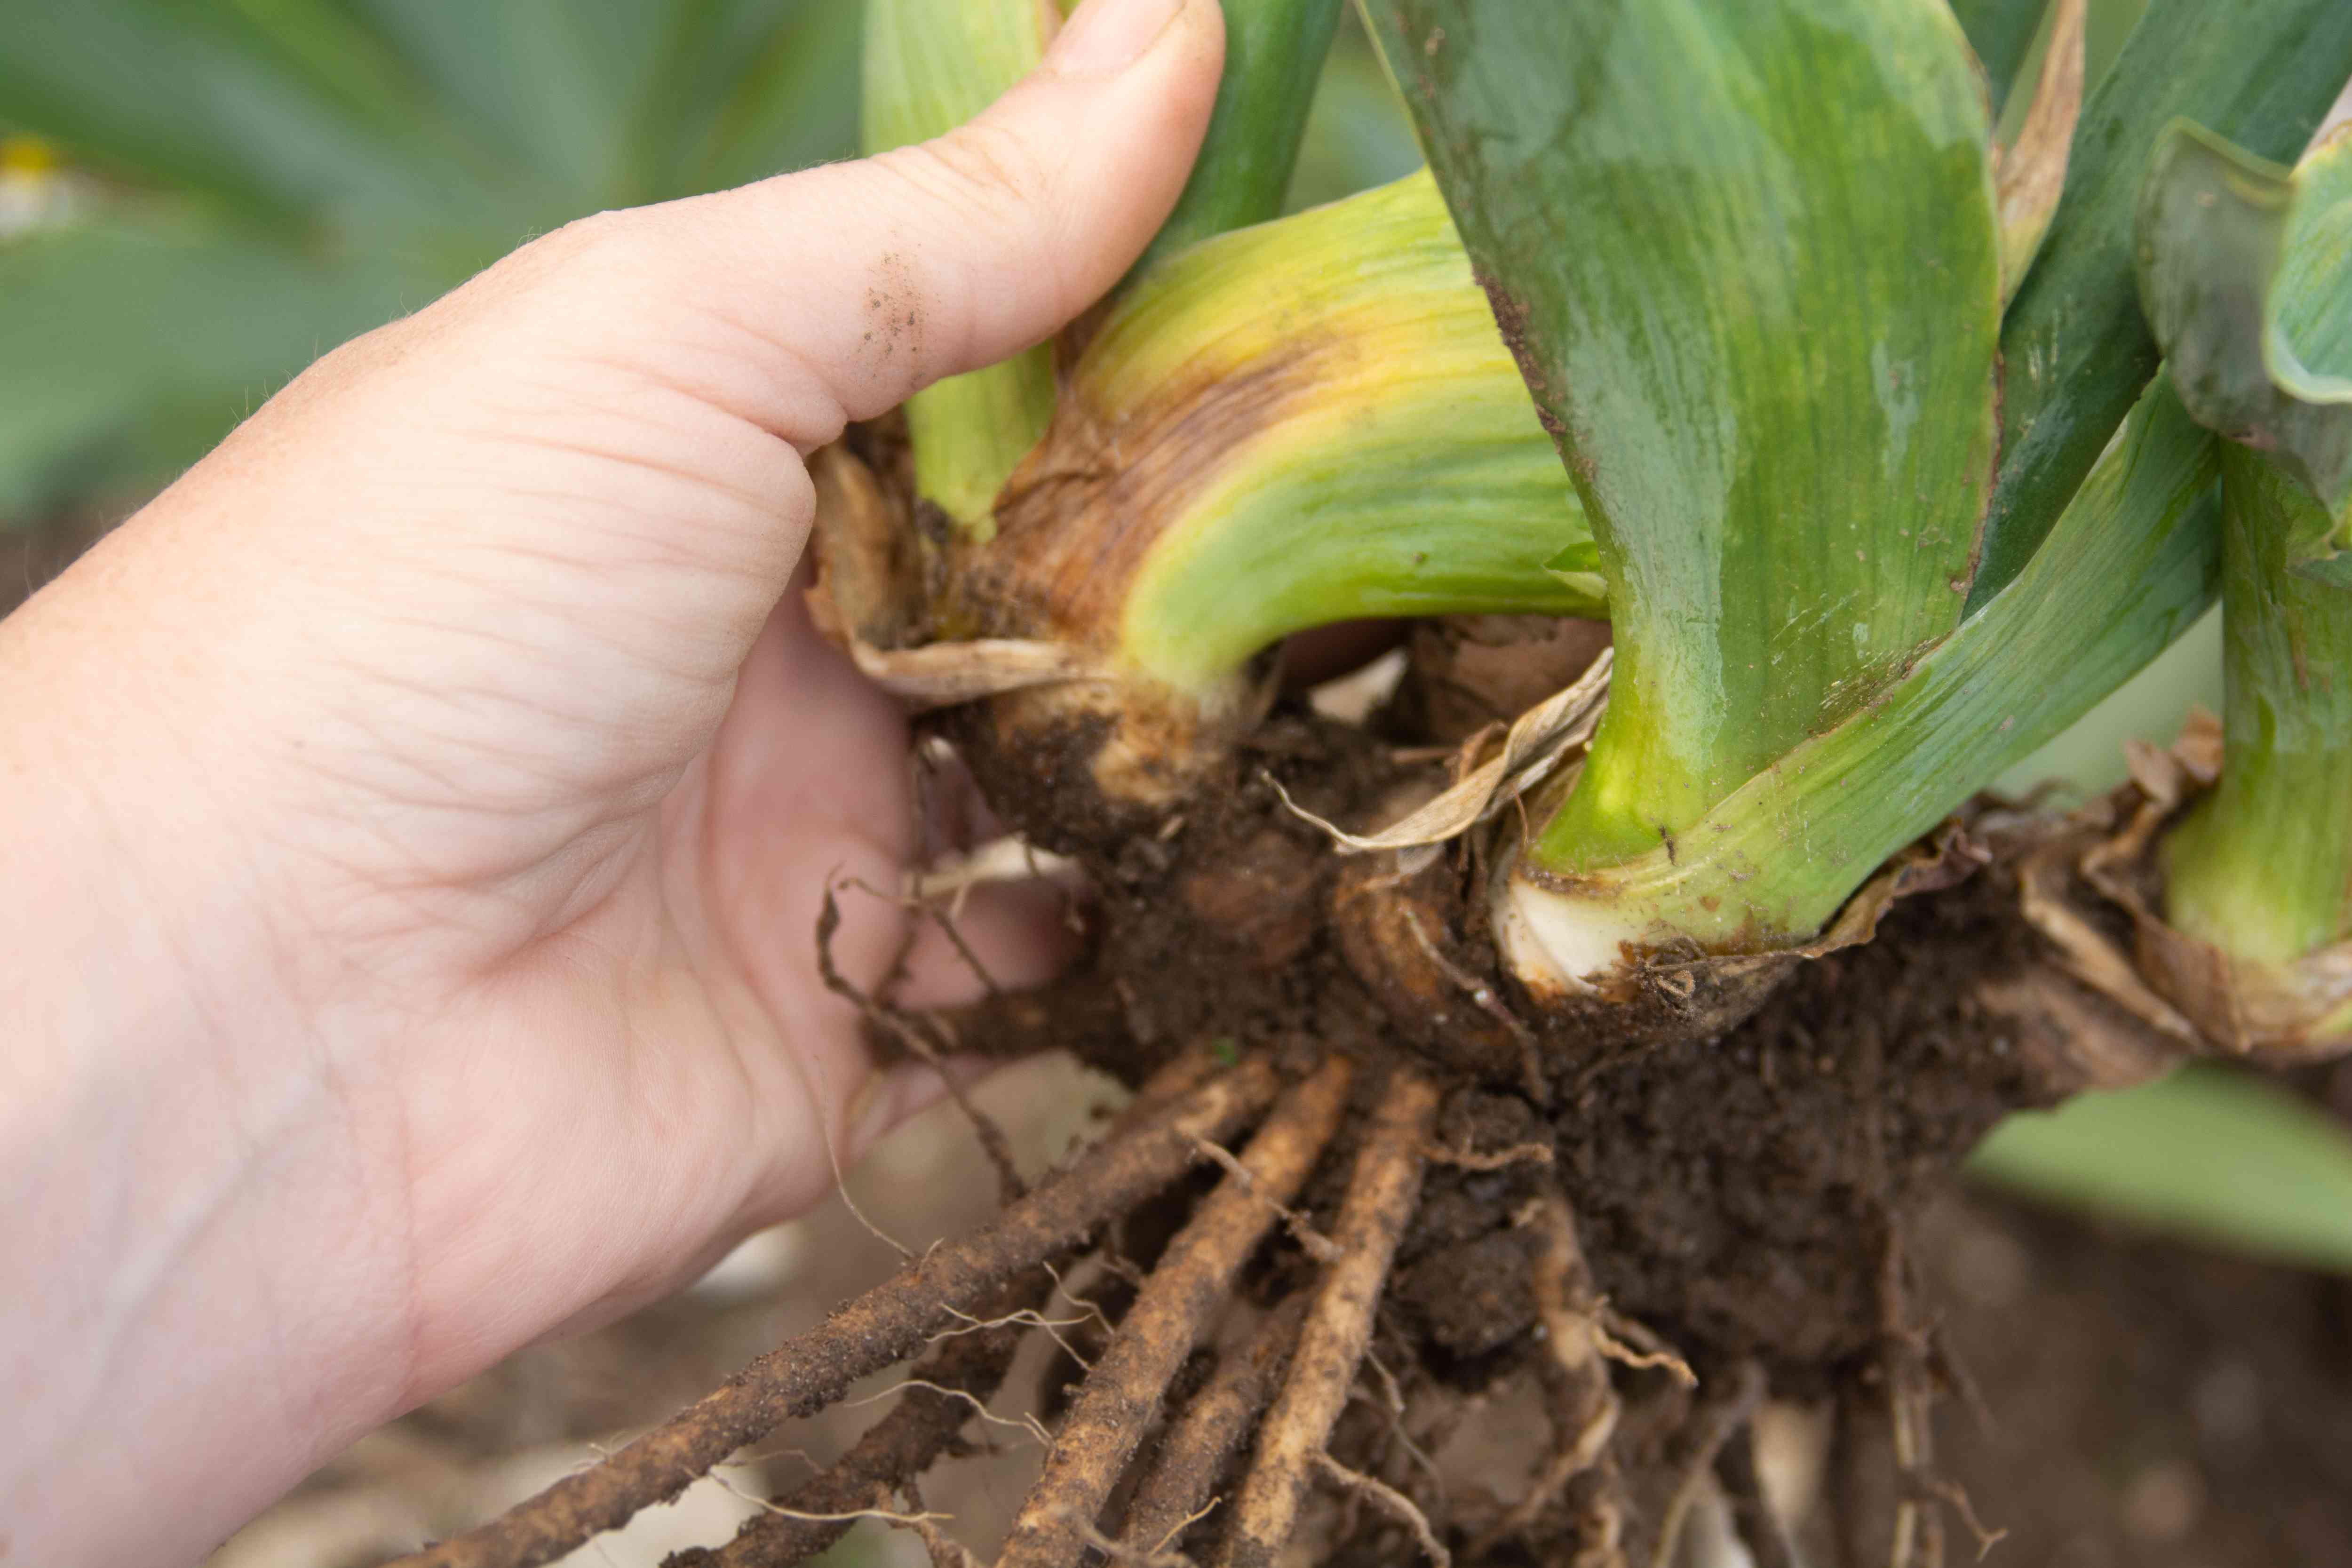 Bearded iris plant rhizomes dug up and lifted from ground